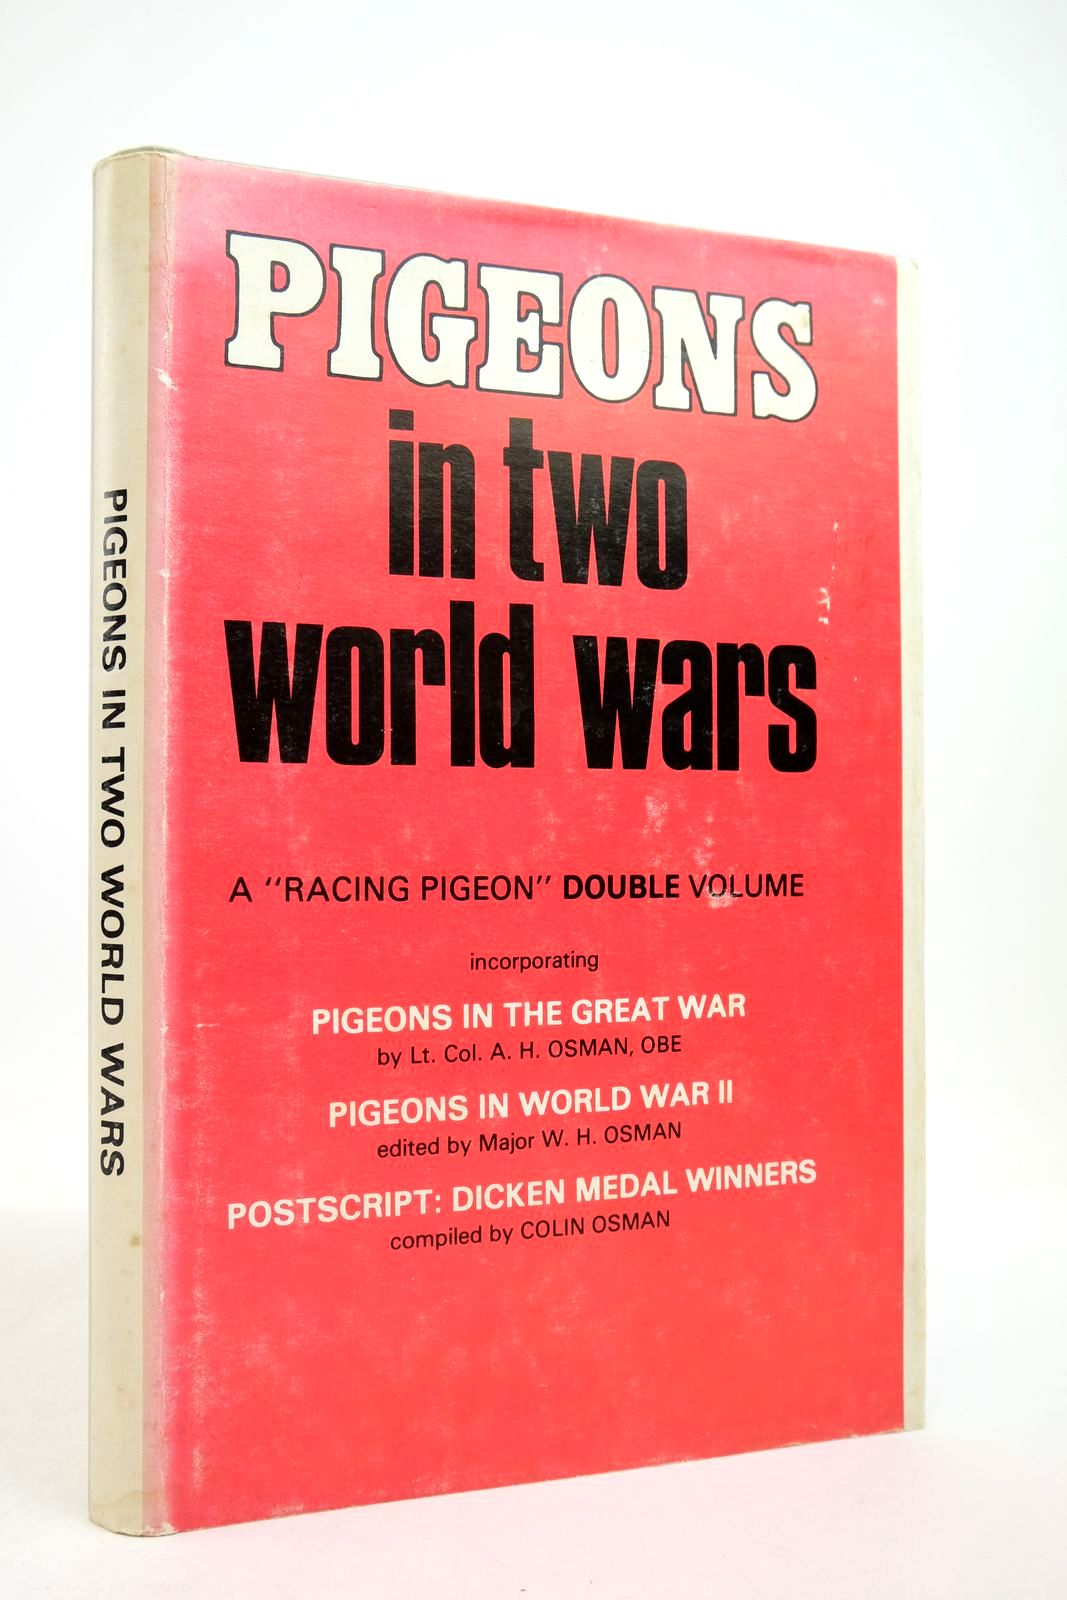 Photo of PIGEONS IN TWO WORLD WARS- Stock Number: 2134849